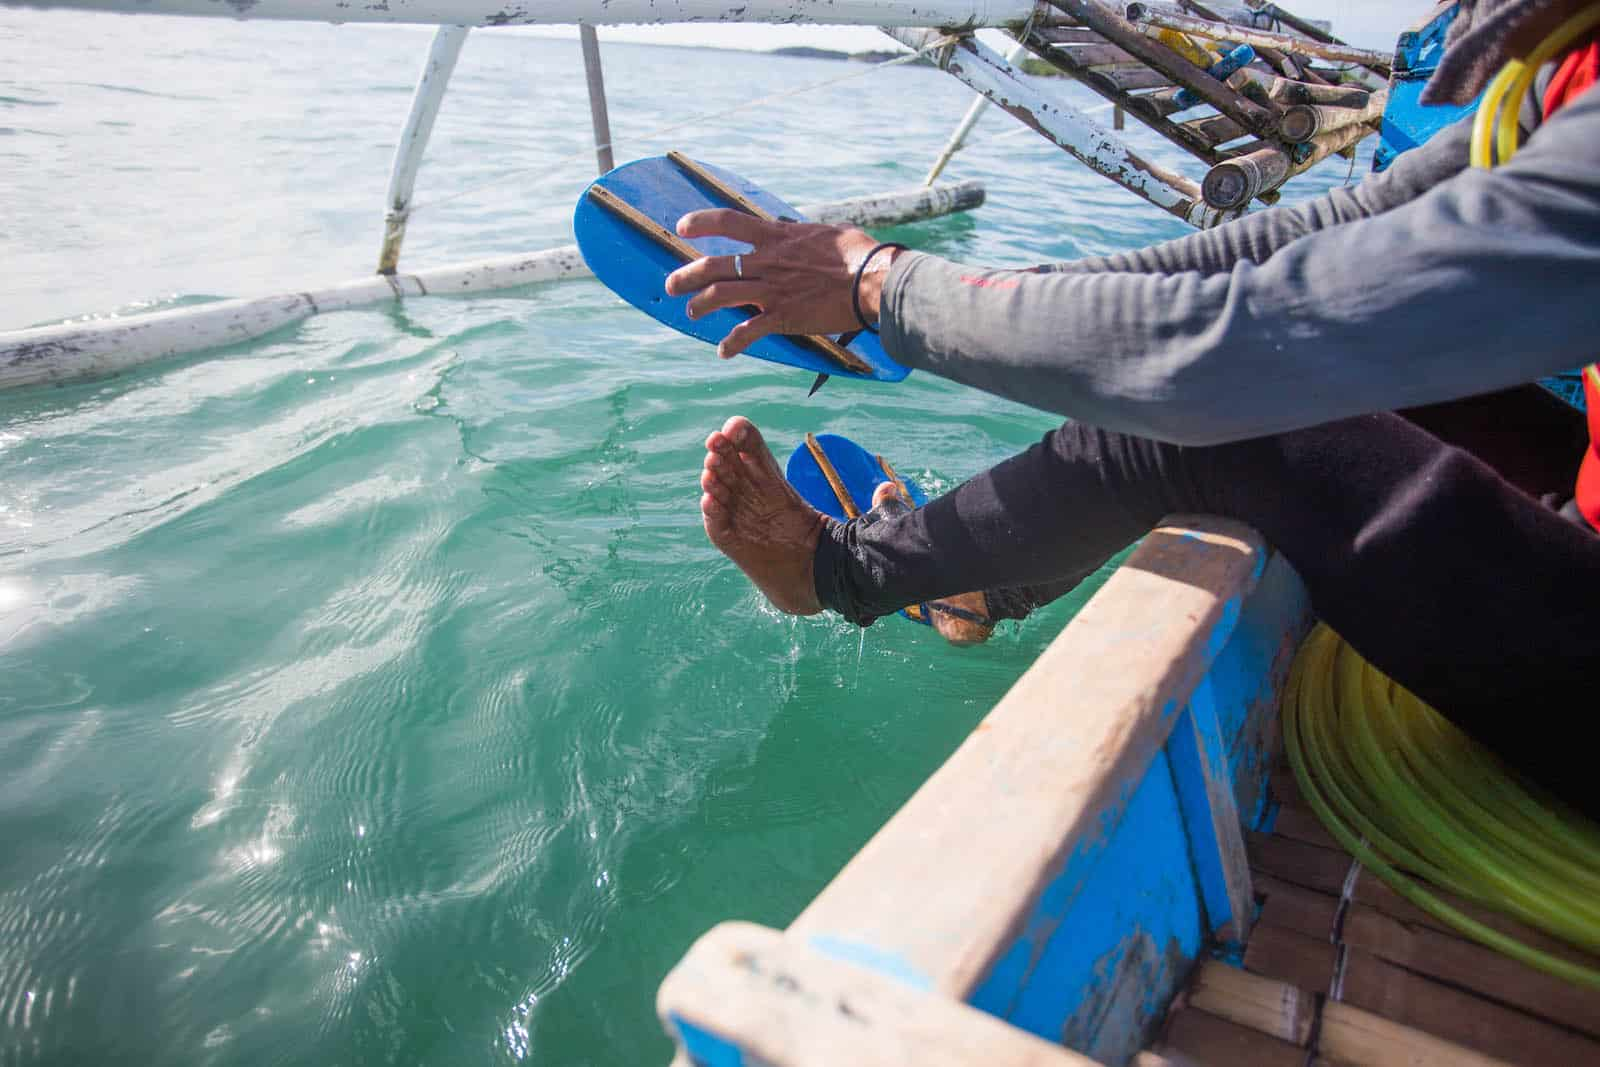 A man sits on the edge of a canoe putting on blue flippers.